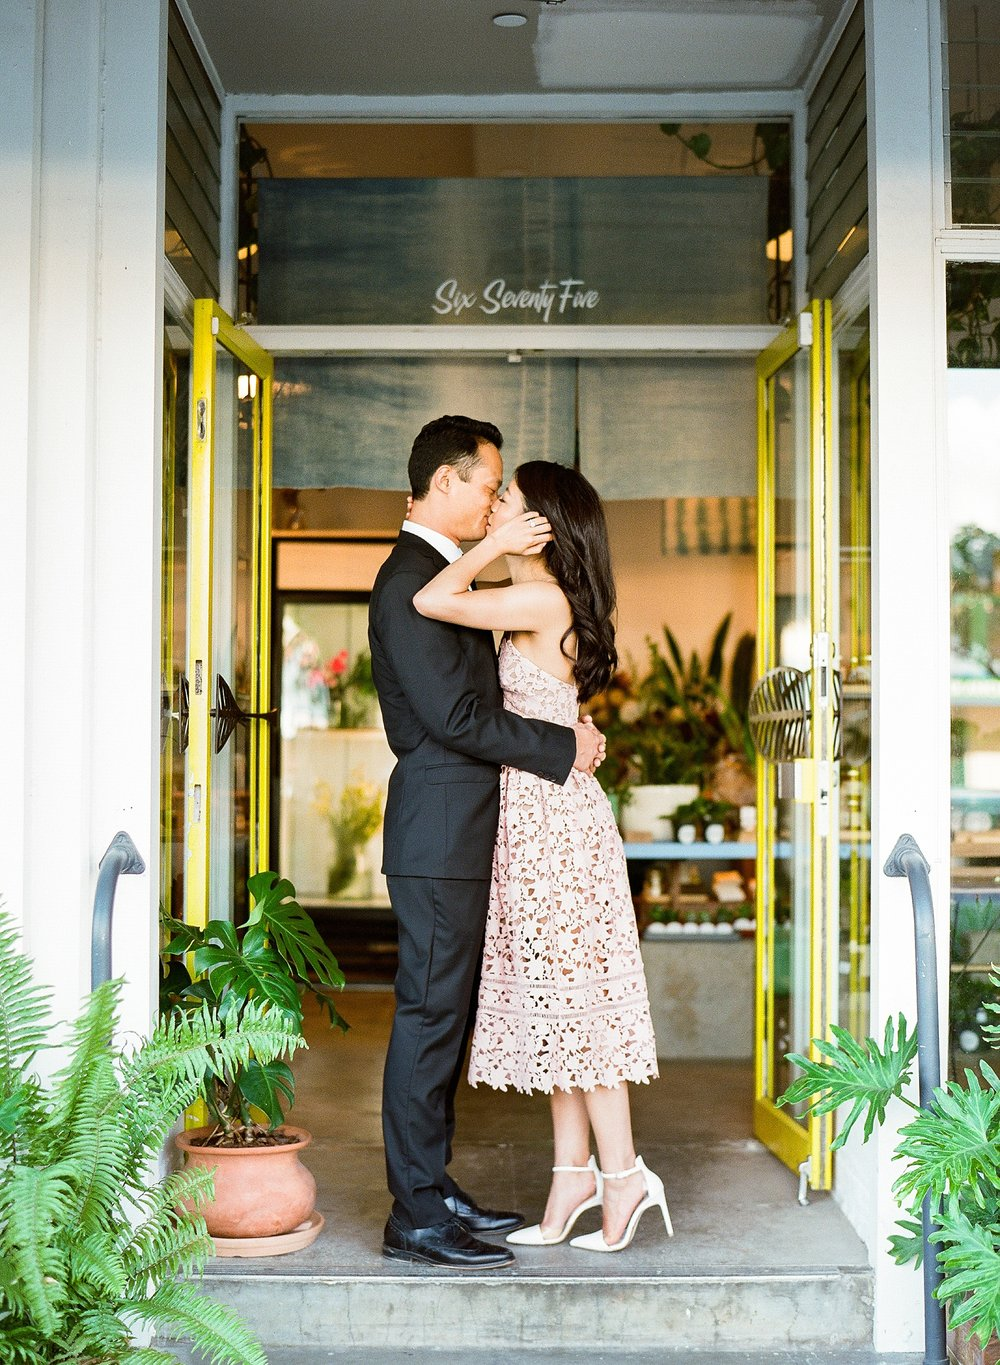 Arvo Honolulu Hawaii Coffee Shop Engagement Photo